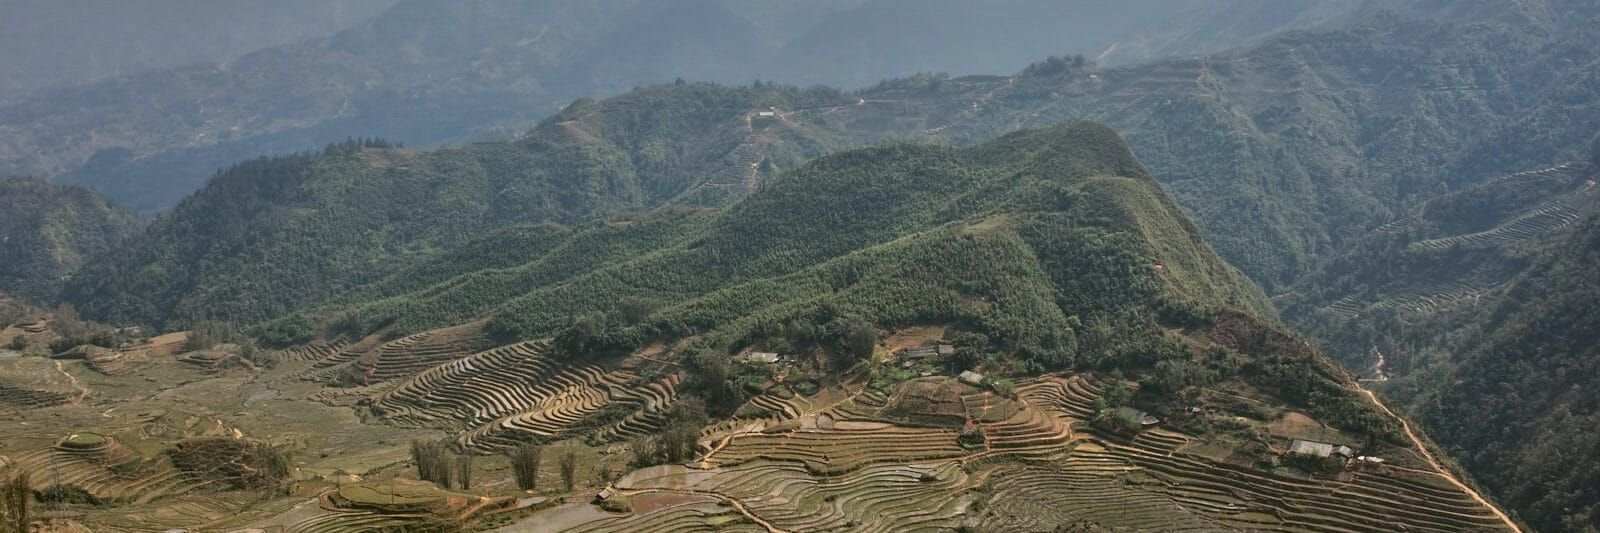 Image of the Hoang Lien Son Mountain Range in northern Vietnam